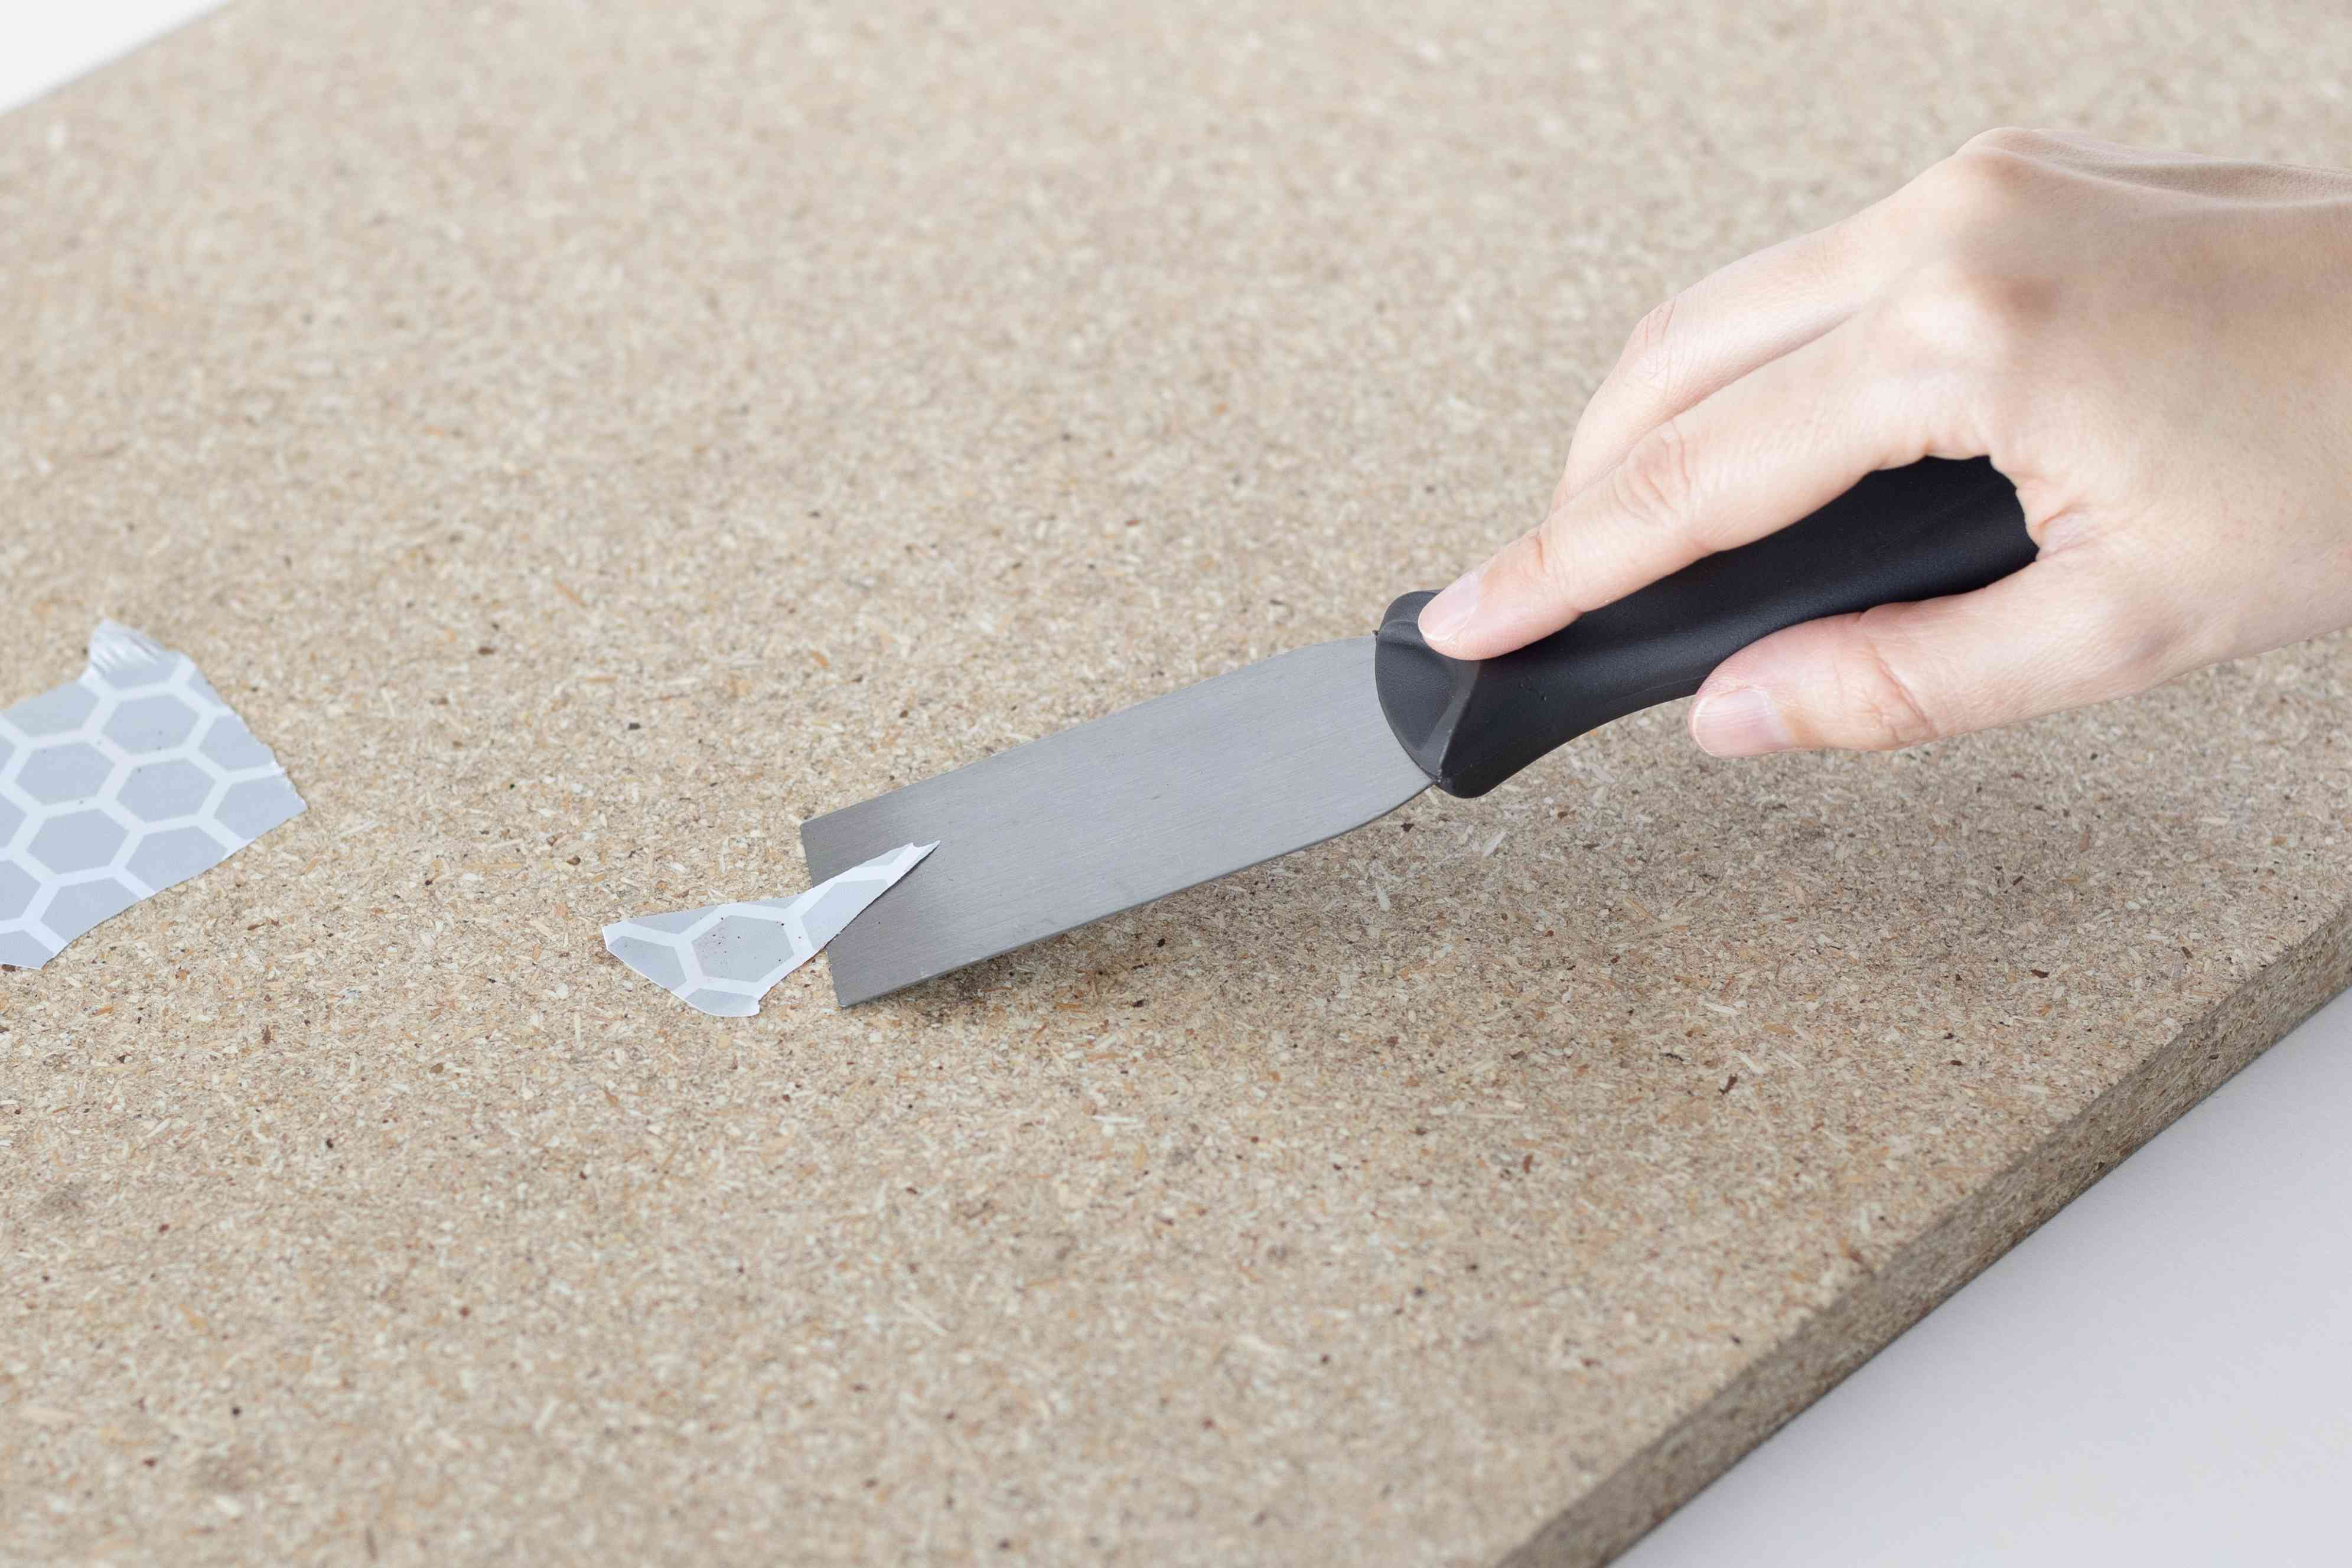 using the putty knife to scrape off any leftover bits of shelf liner